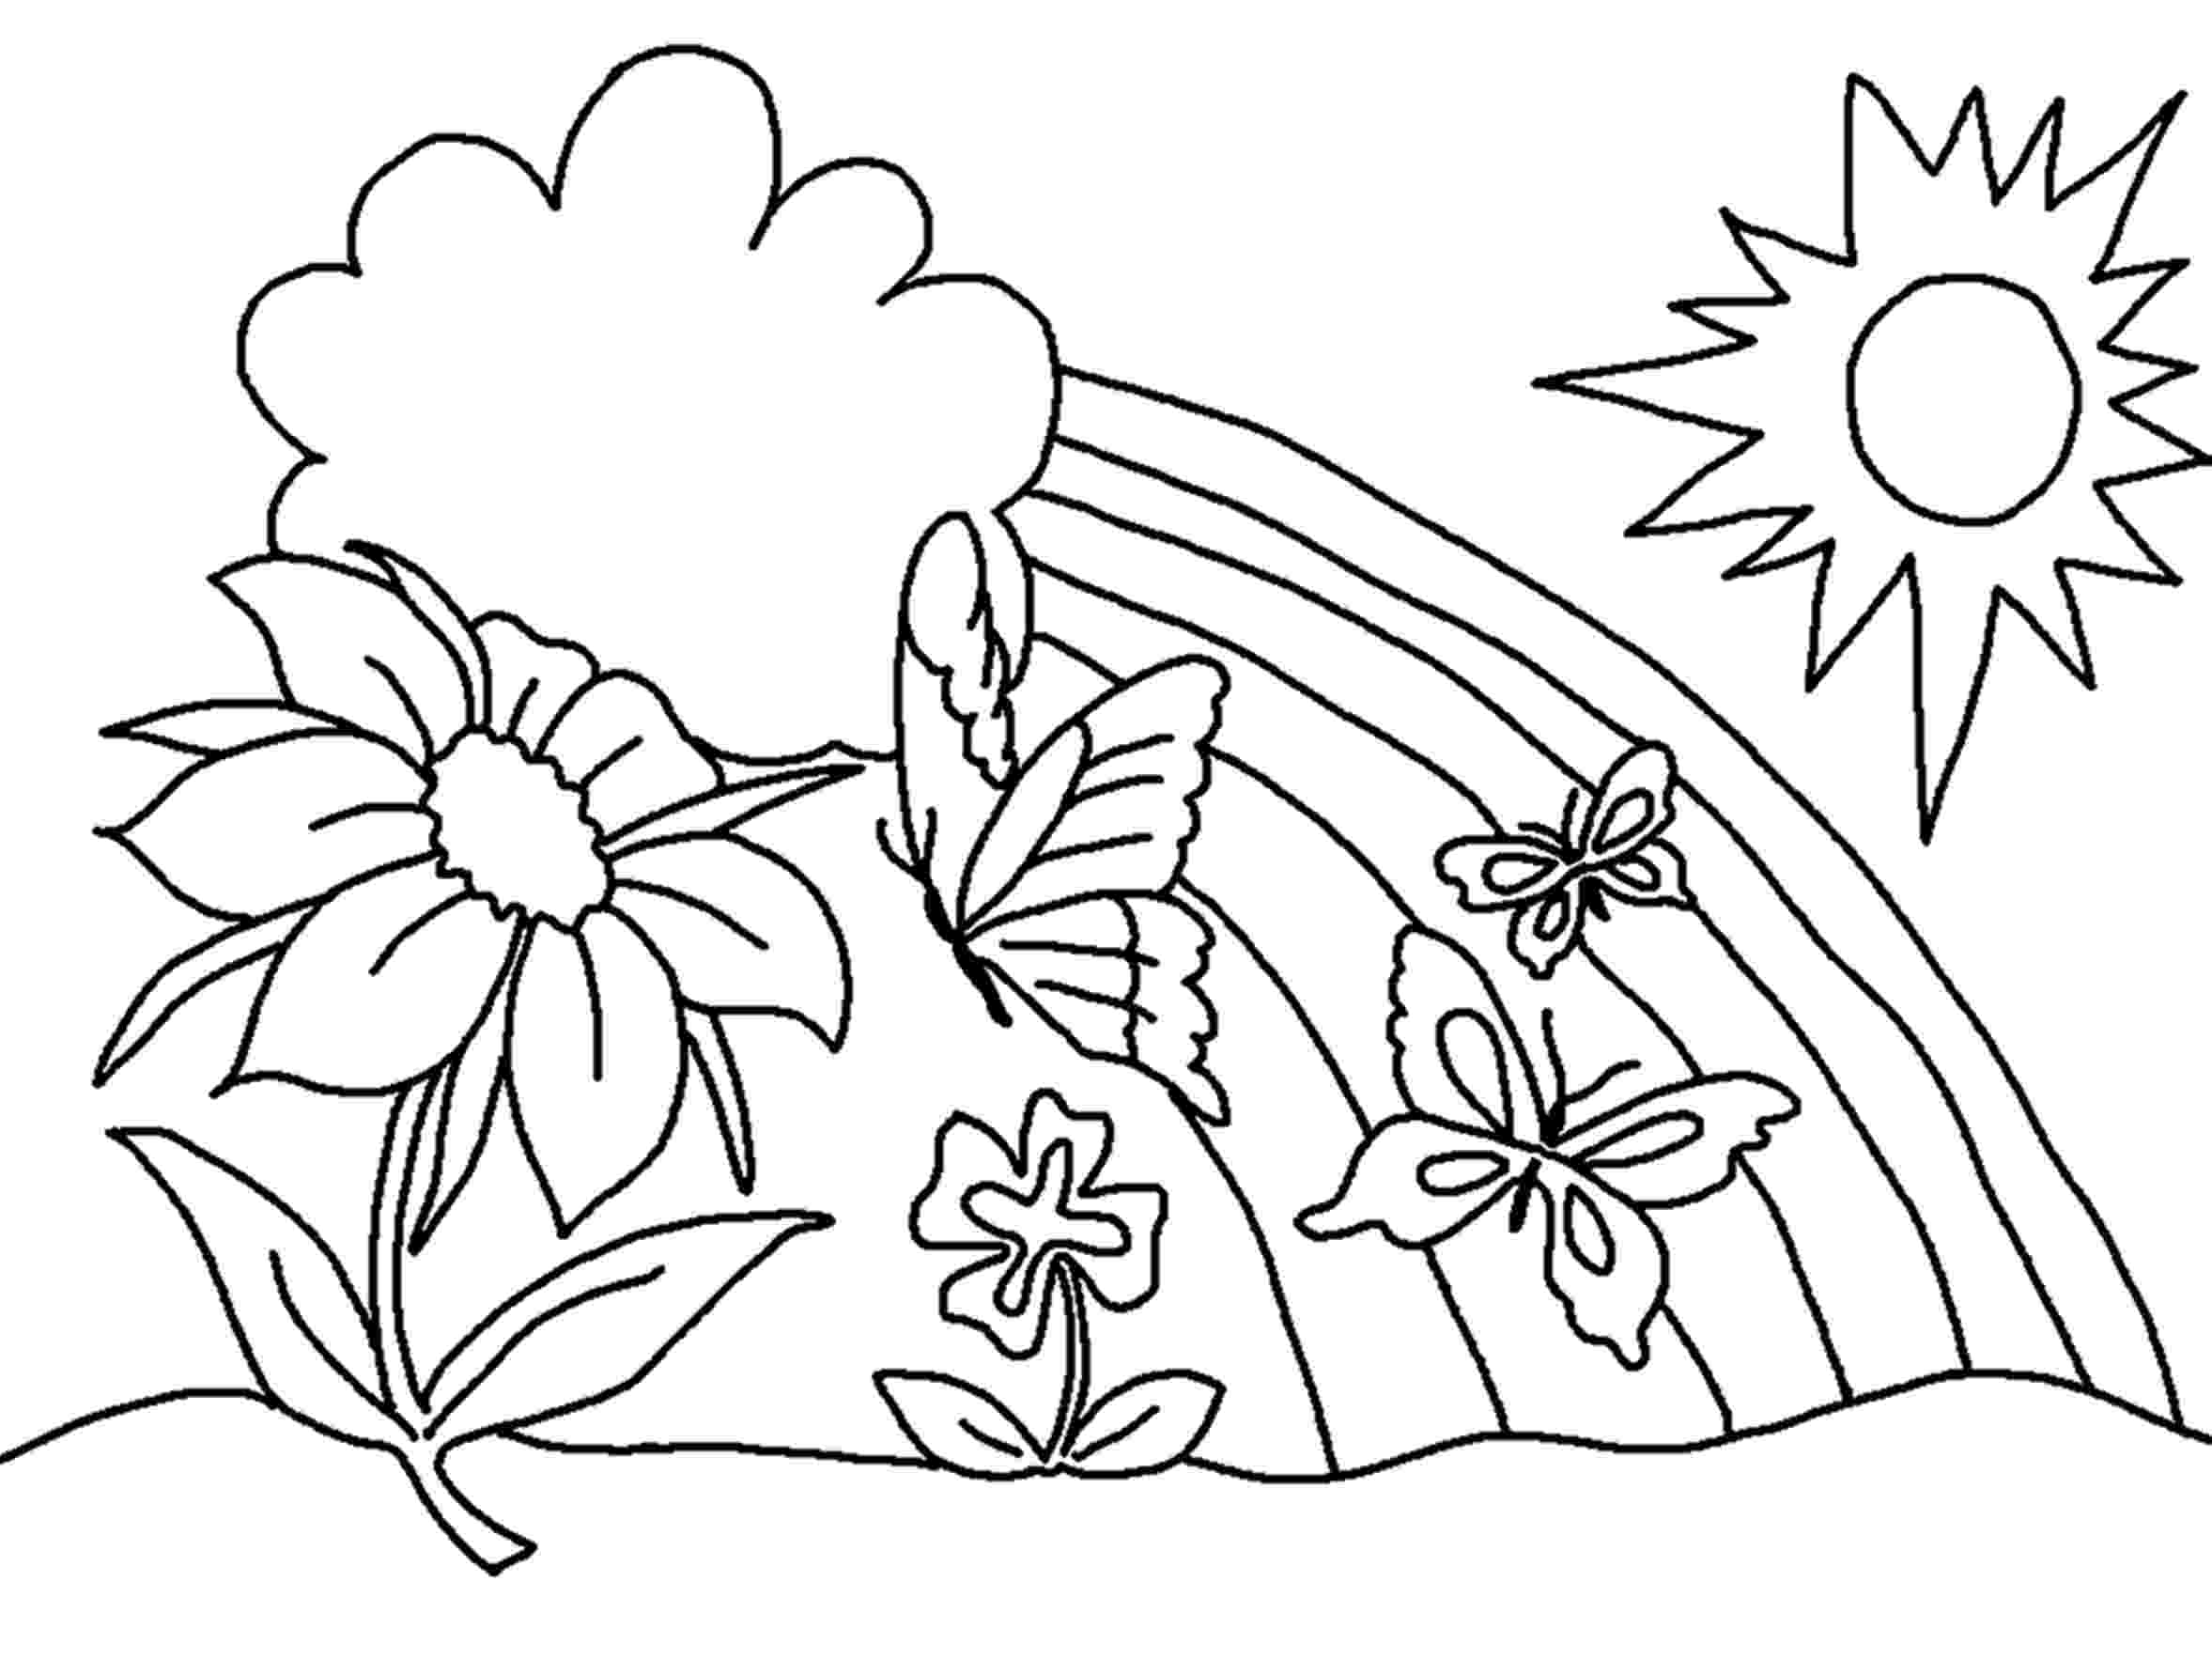 spring flowers printable coloring pages free spring coloring pages for adults the country chic coloring printable flowers pages spring